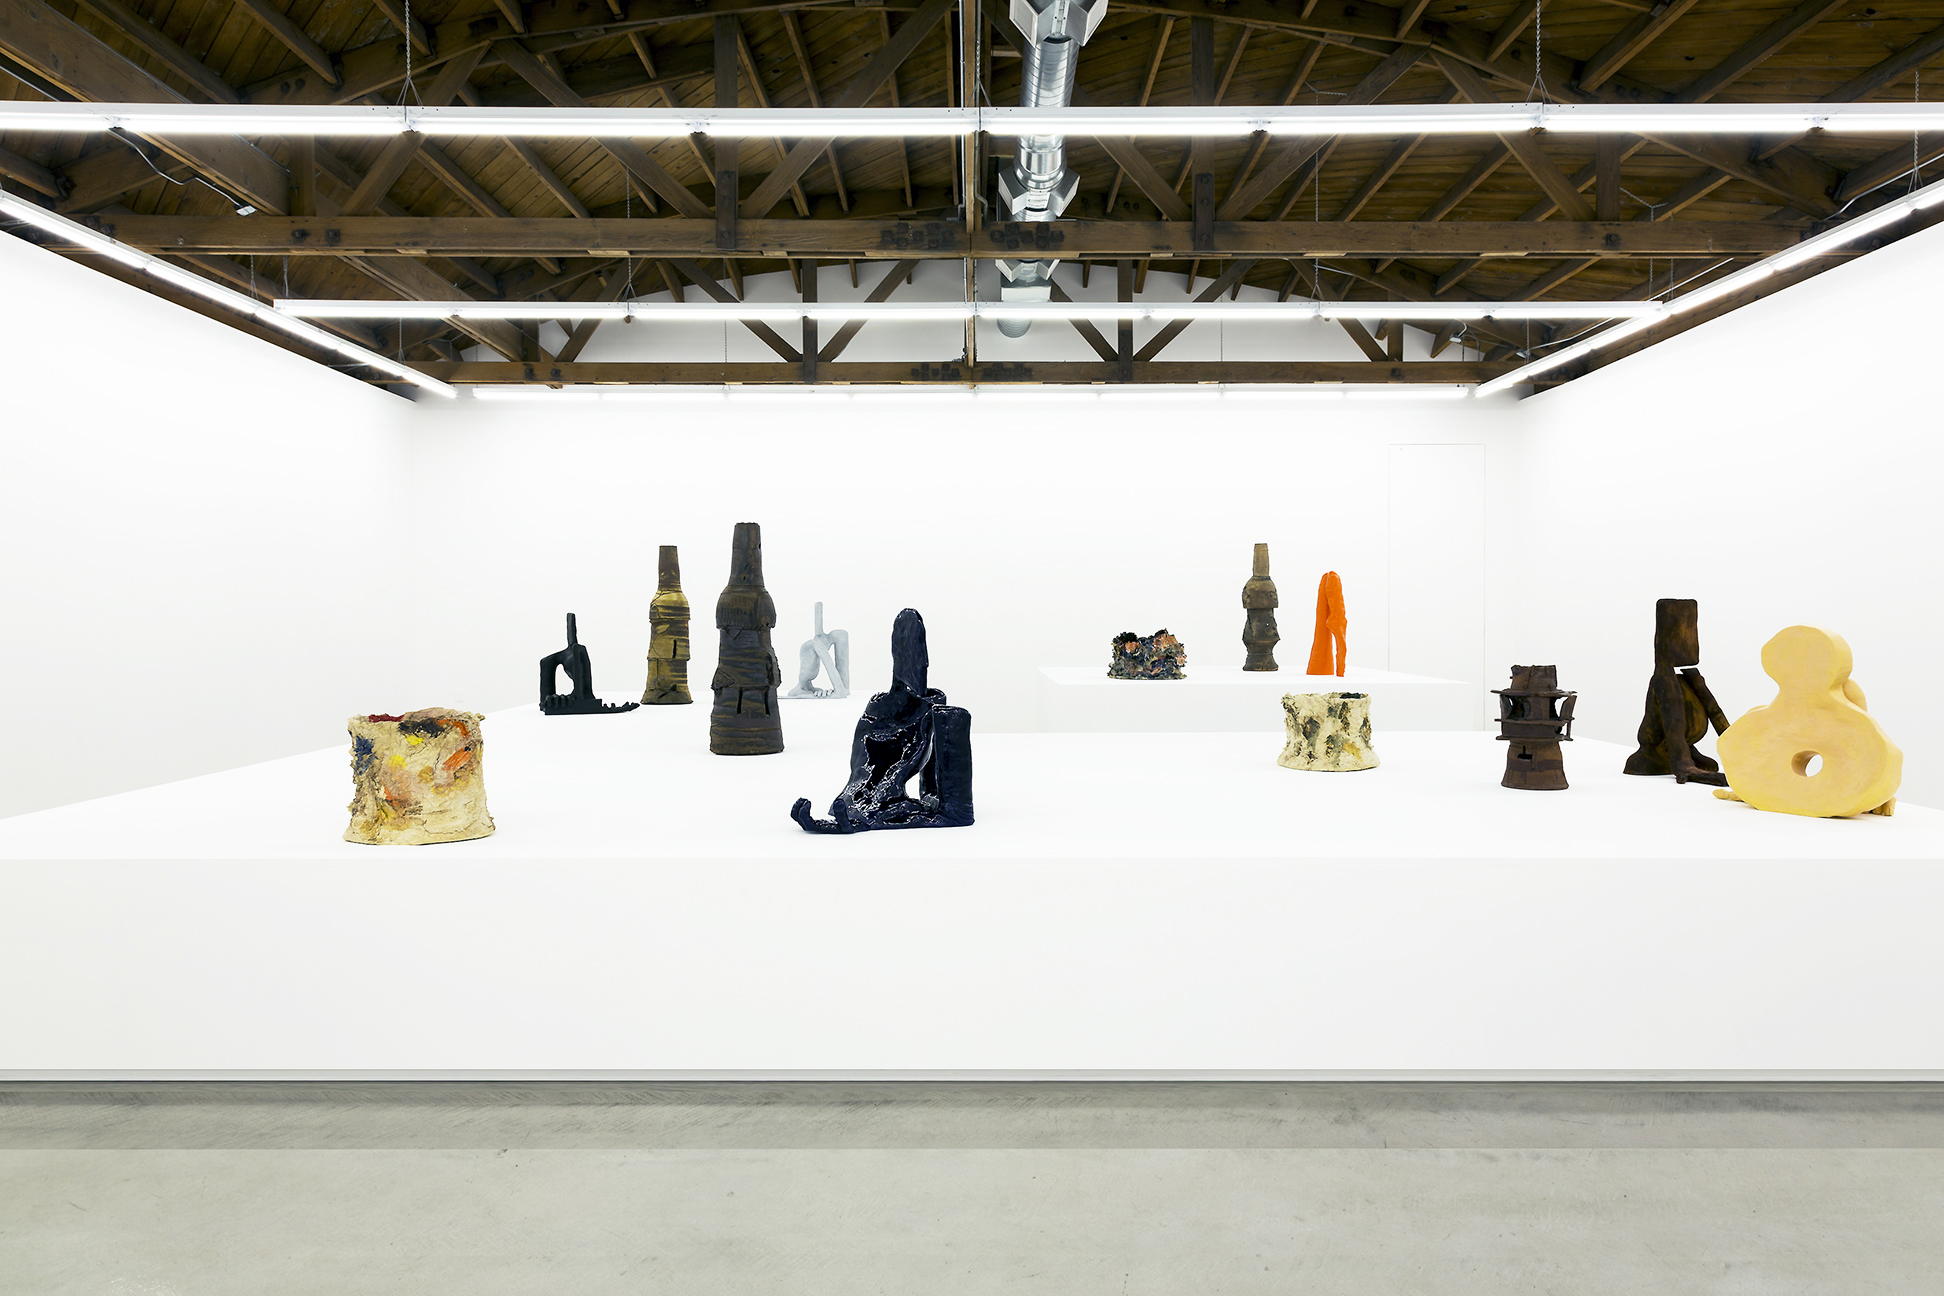 Installation view of Jesse Wine and Peter Voulkos works in ceramic.